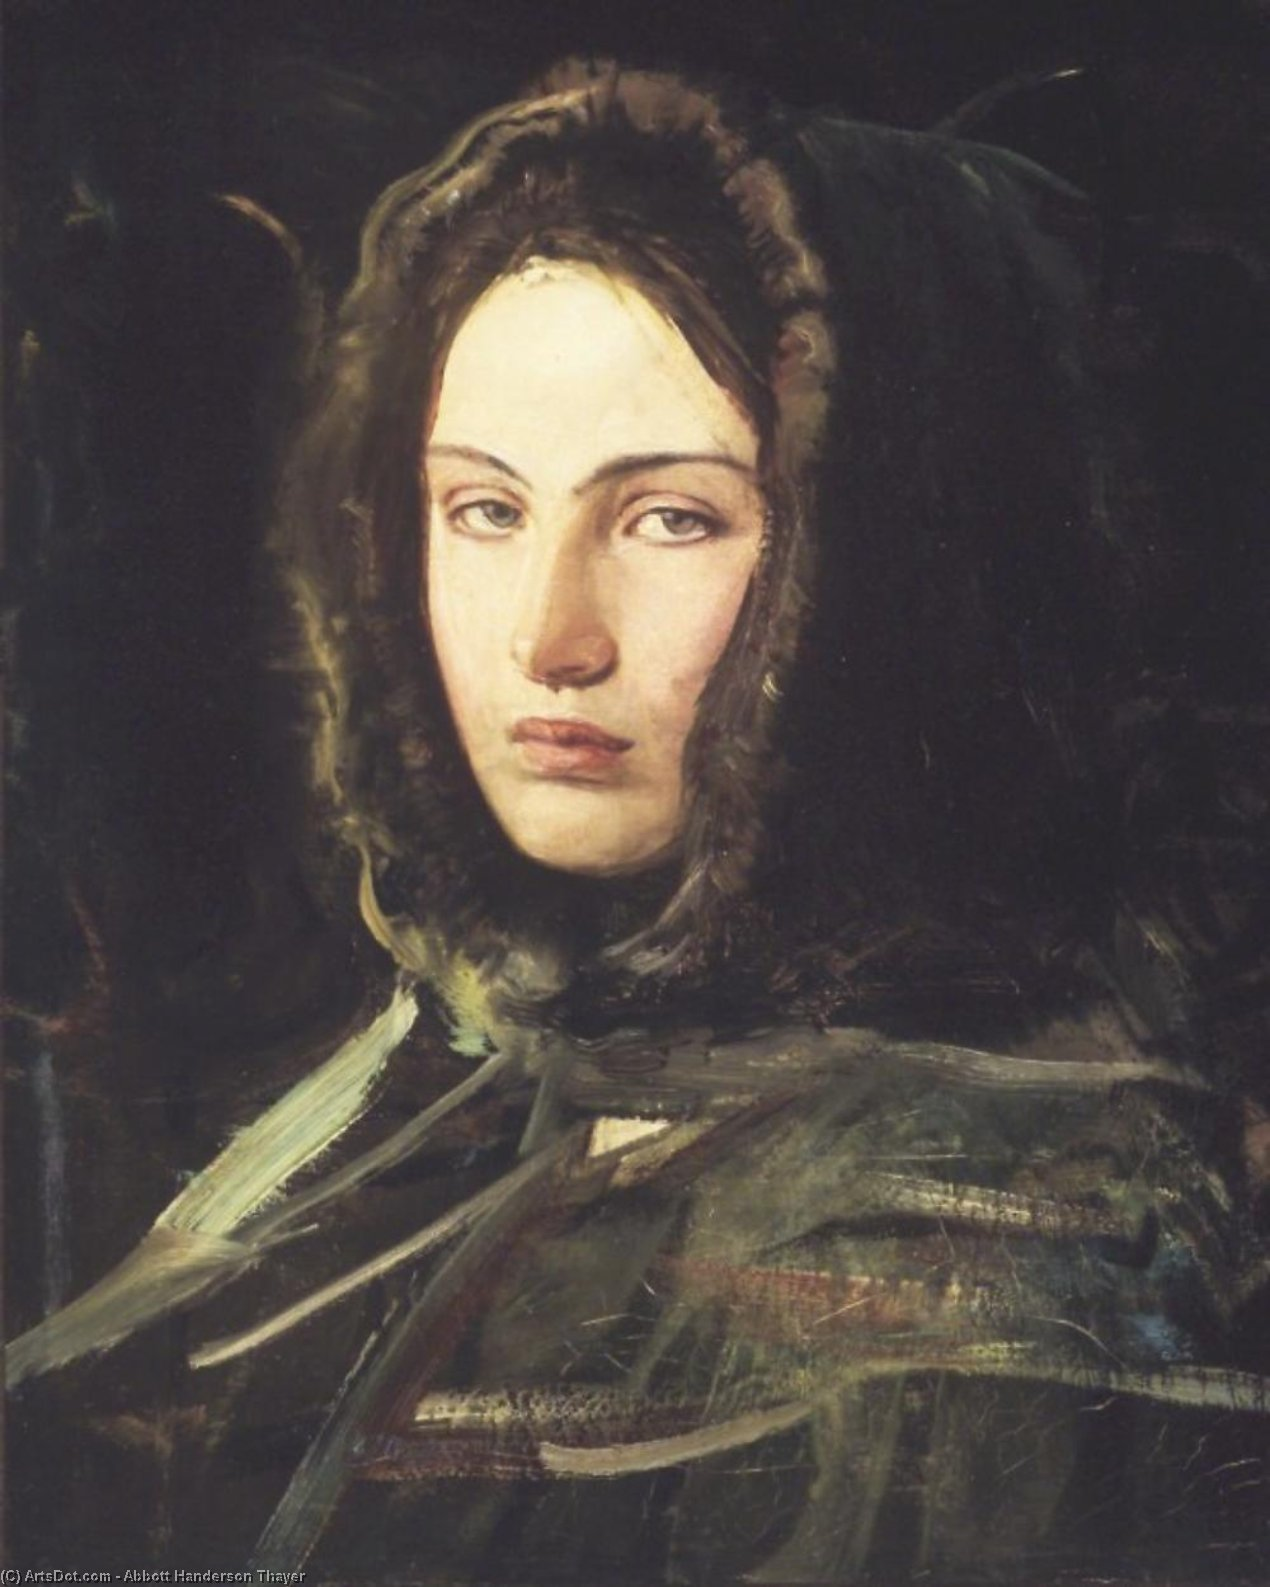 A Woman with a Fur-Lined Hood, 1908 by Abbott Handerson Thayer (1849-1921, United States)